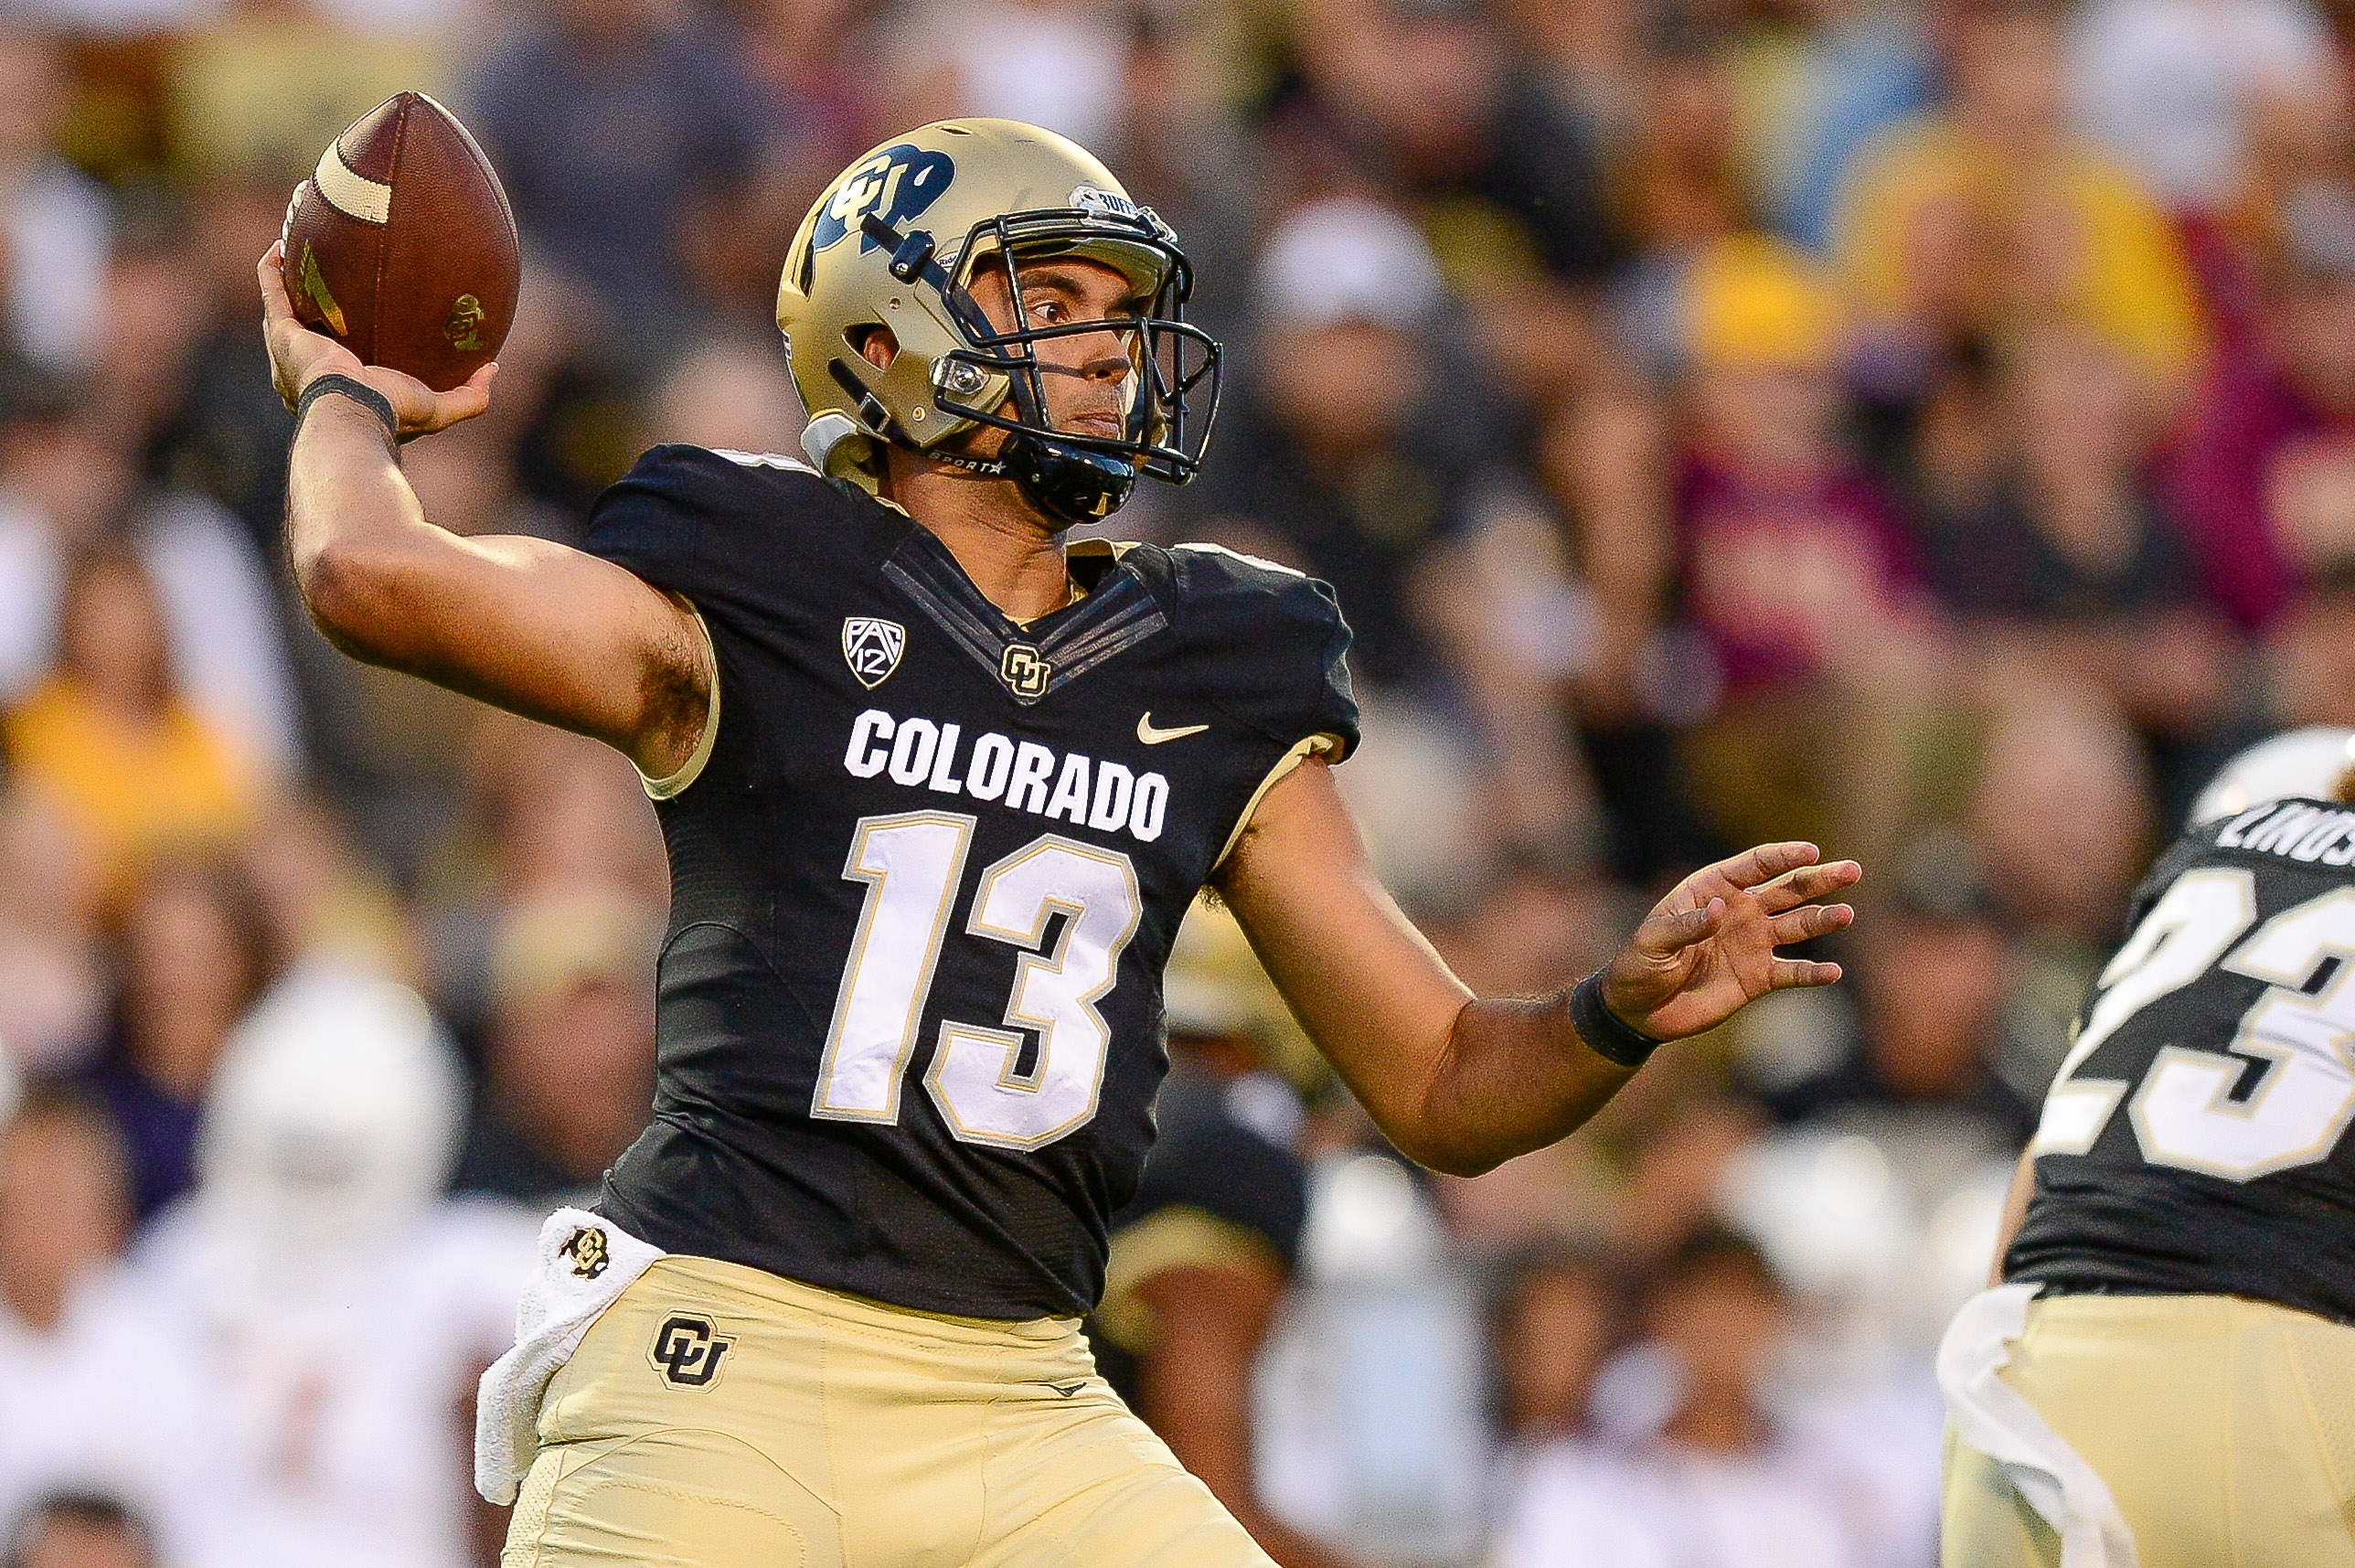 BOULDER, CO - OCTOBER 15: Colorado Buffaloes quarterback Sefo Liufau #13 passes in the first half of a game against the Arizona State Sun Devils at Folsom Field on October 15, 2016 in Boulder, Colorado. (Photo by Dustin Bradford/Getty Images)